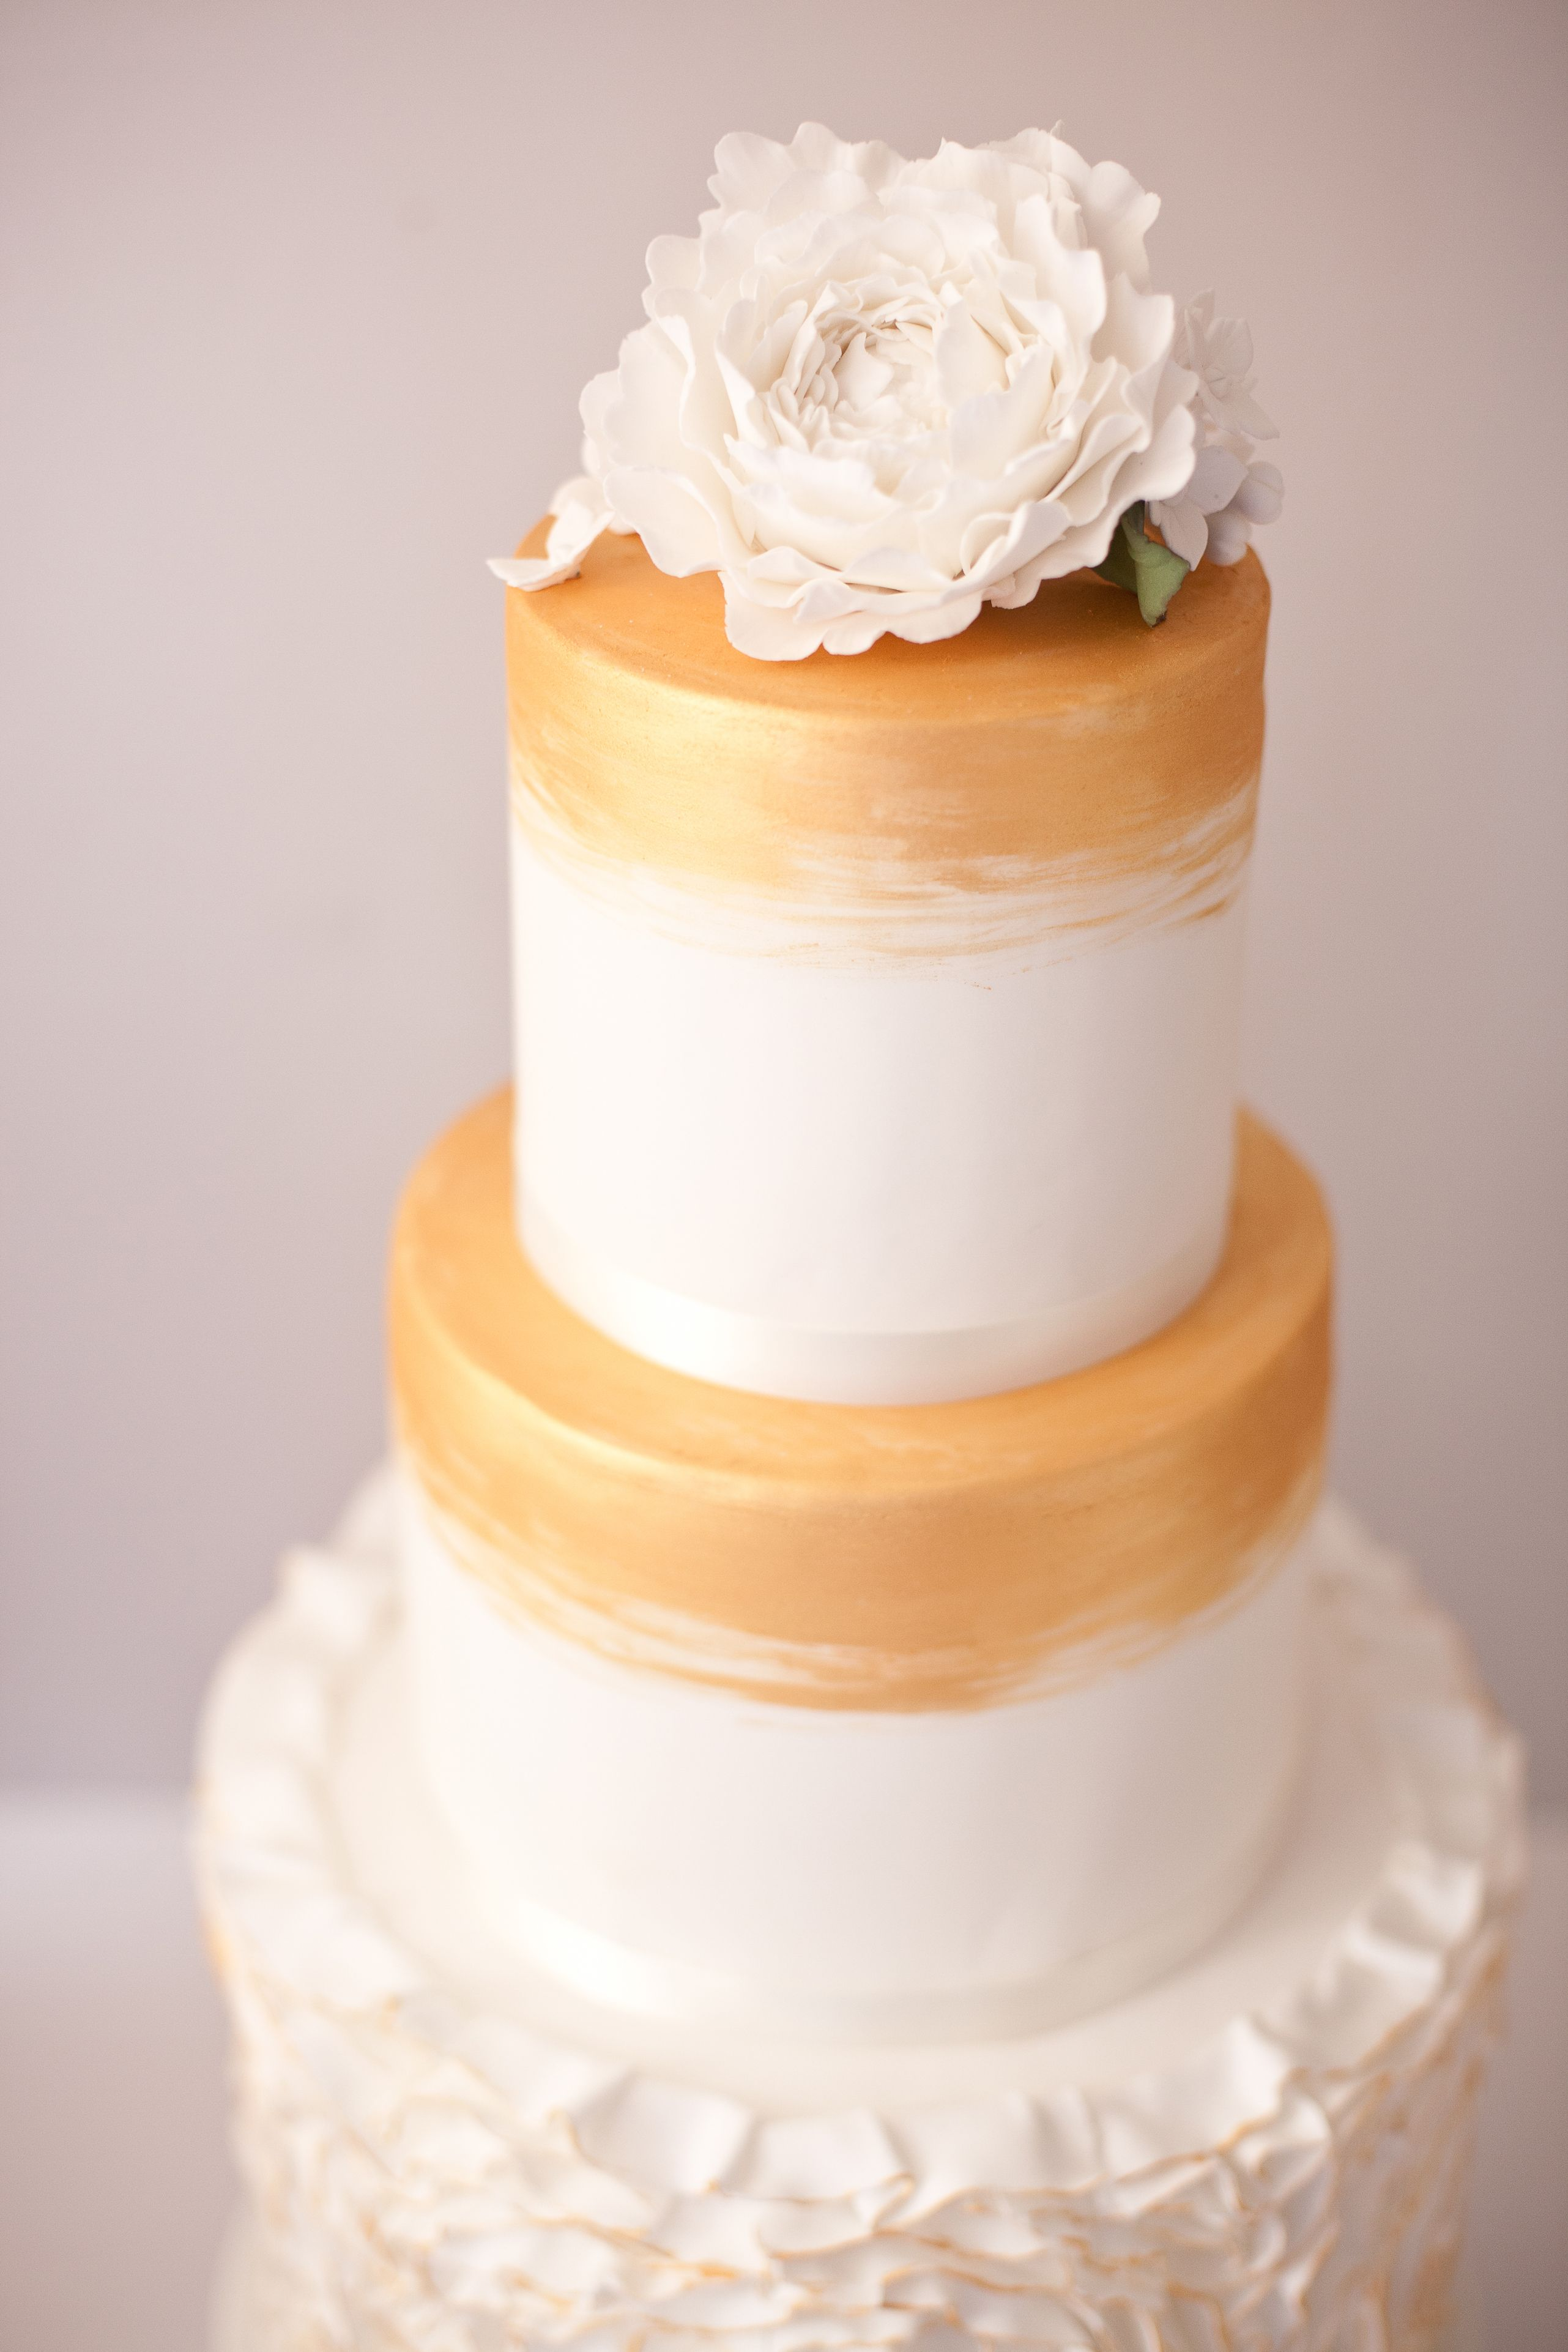 Modern Gold Ruffles Wedding Cake by S K Cakes www.s-k-cakes.co.uk